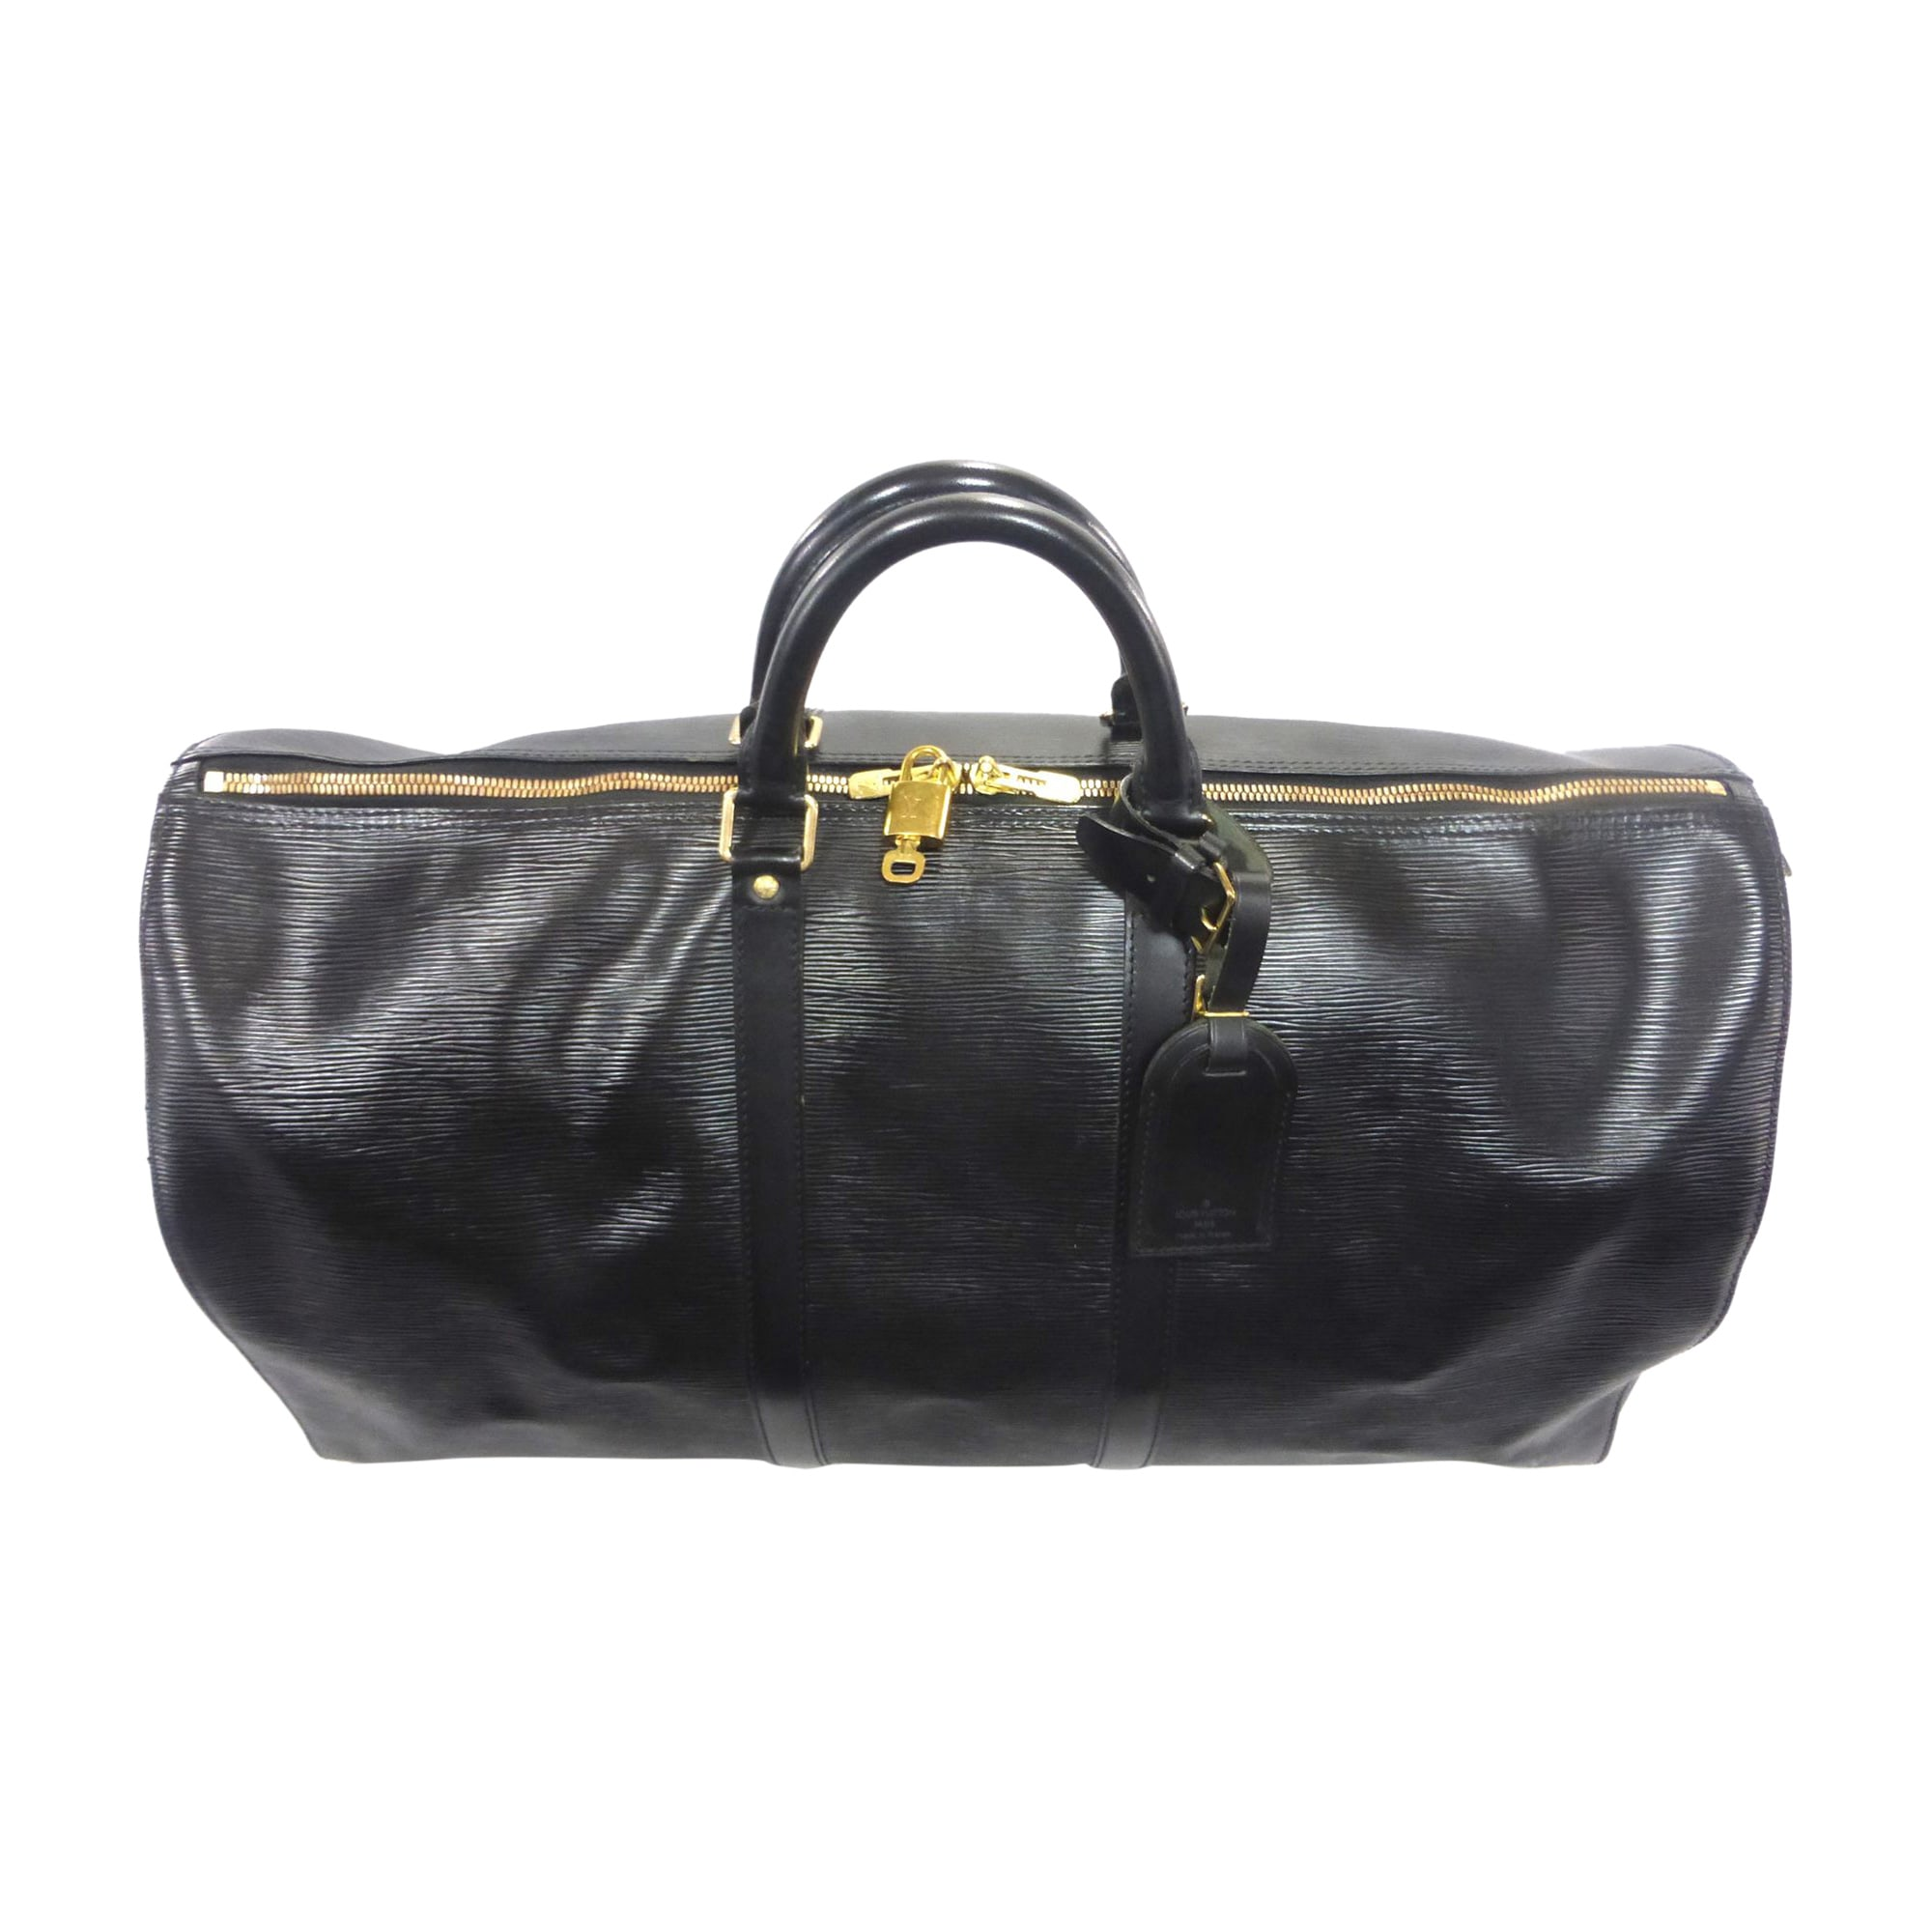 Leather Oversize Bag LOUIS VUITTON Keepall Black